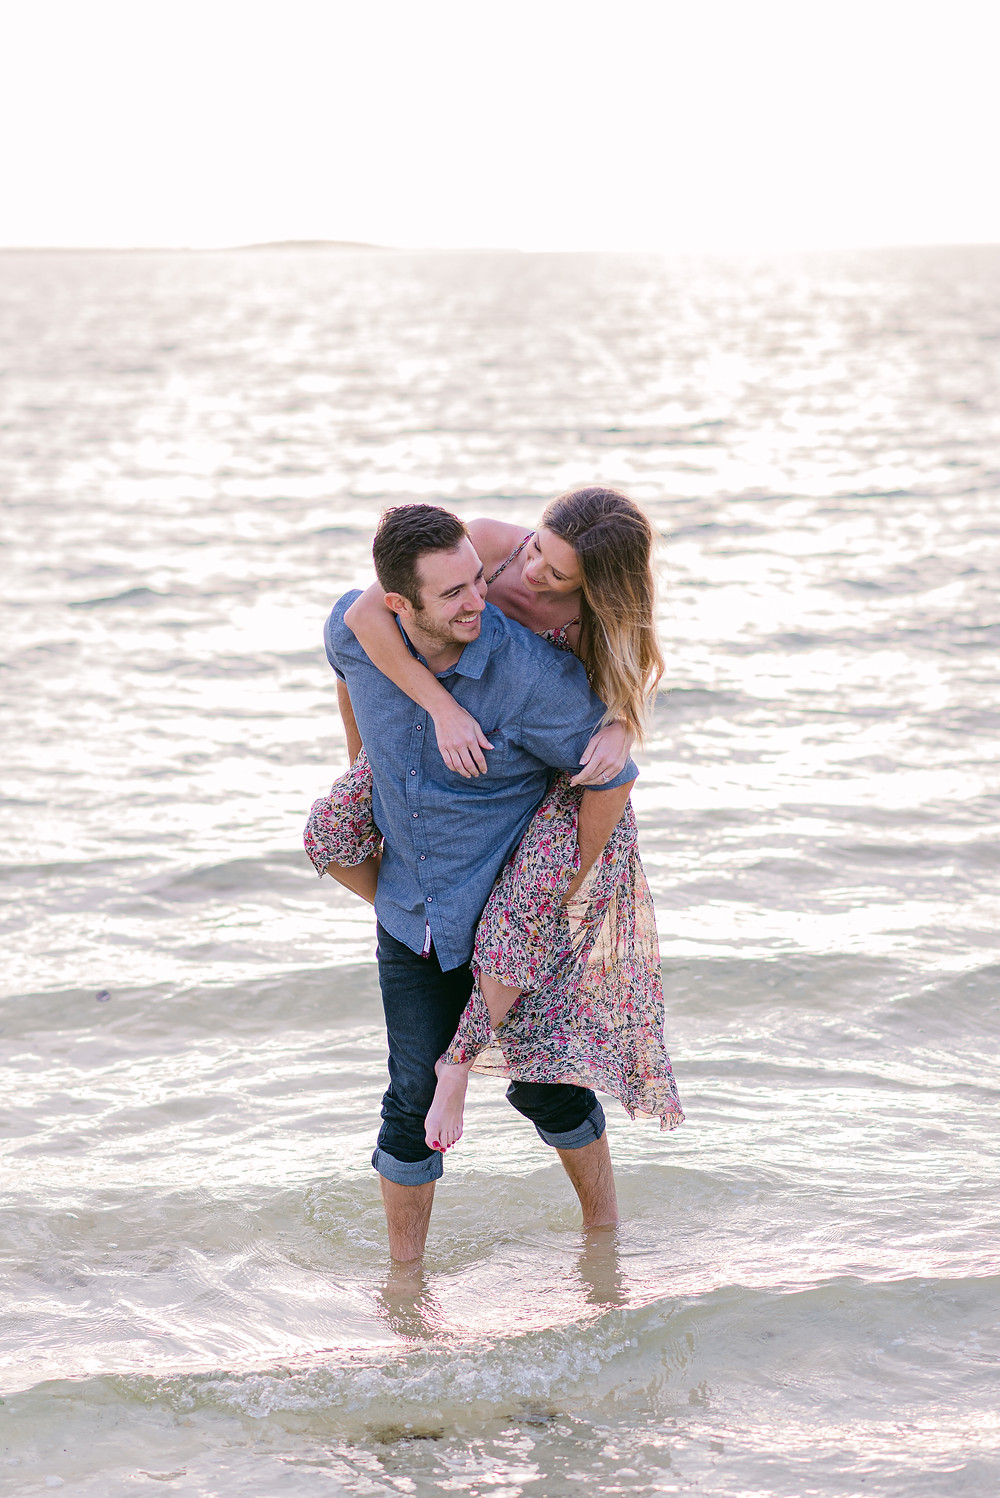 Sarasota engagement photographer Nina Bashaw